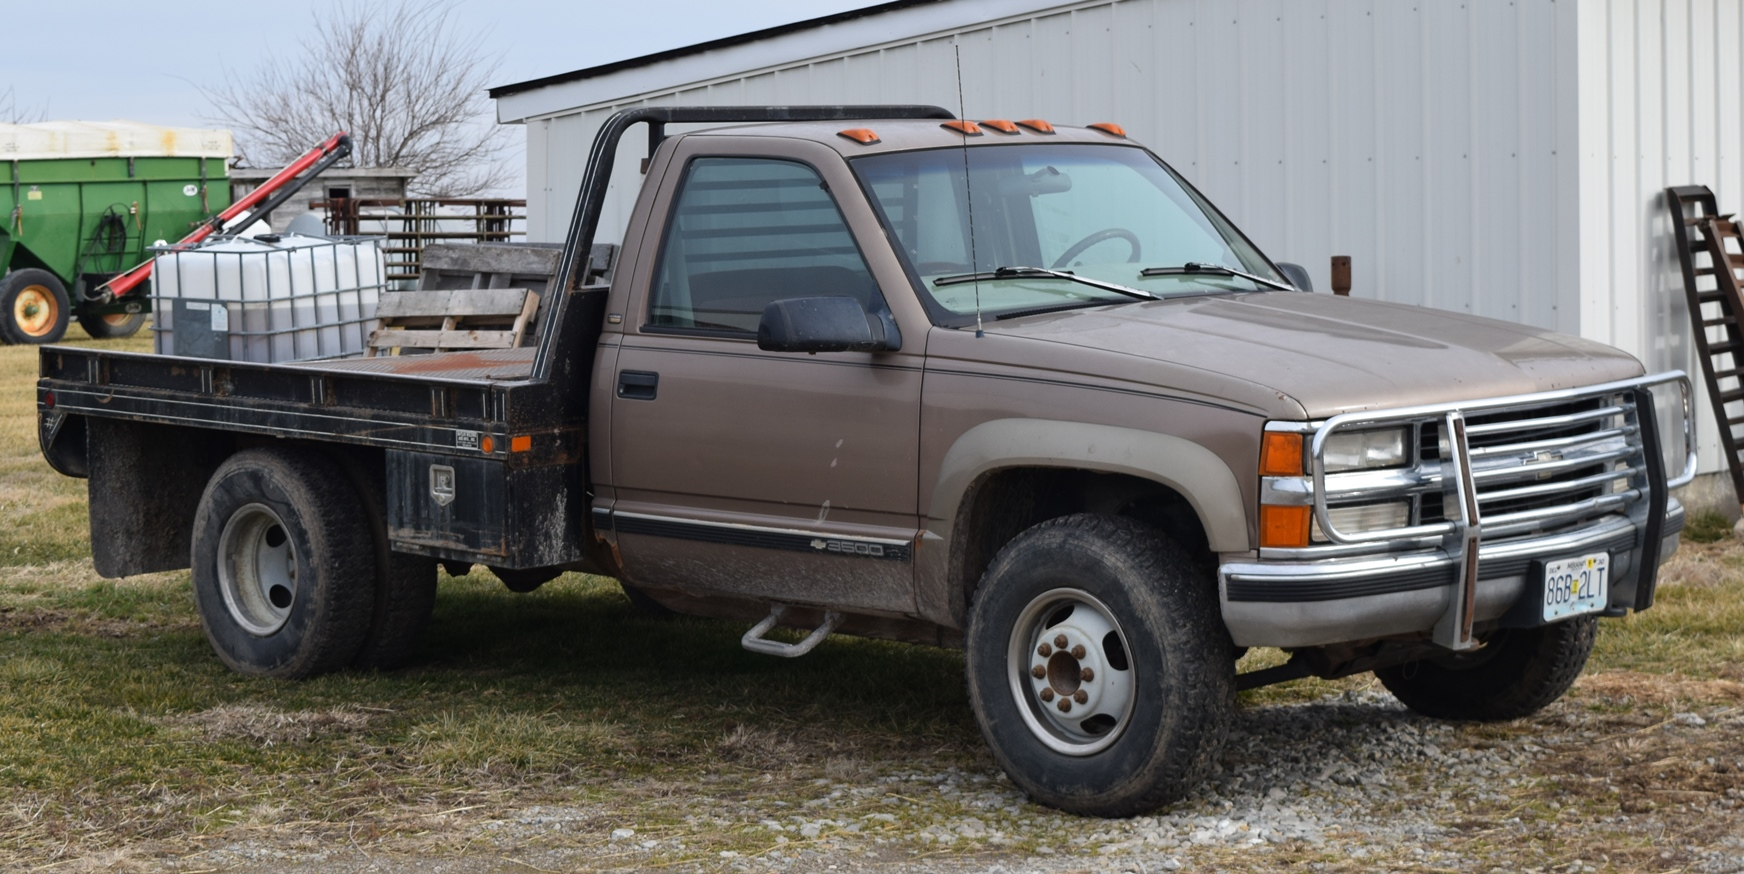 Lot 1077 1997 Chevy 3500 4x4 dually flatbed with hydro bale